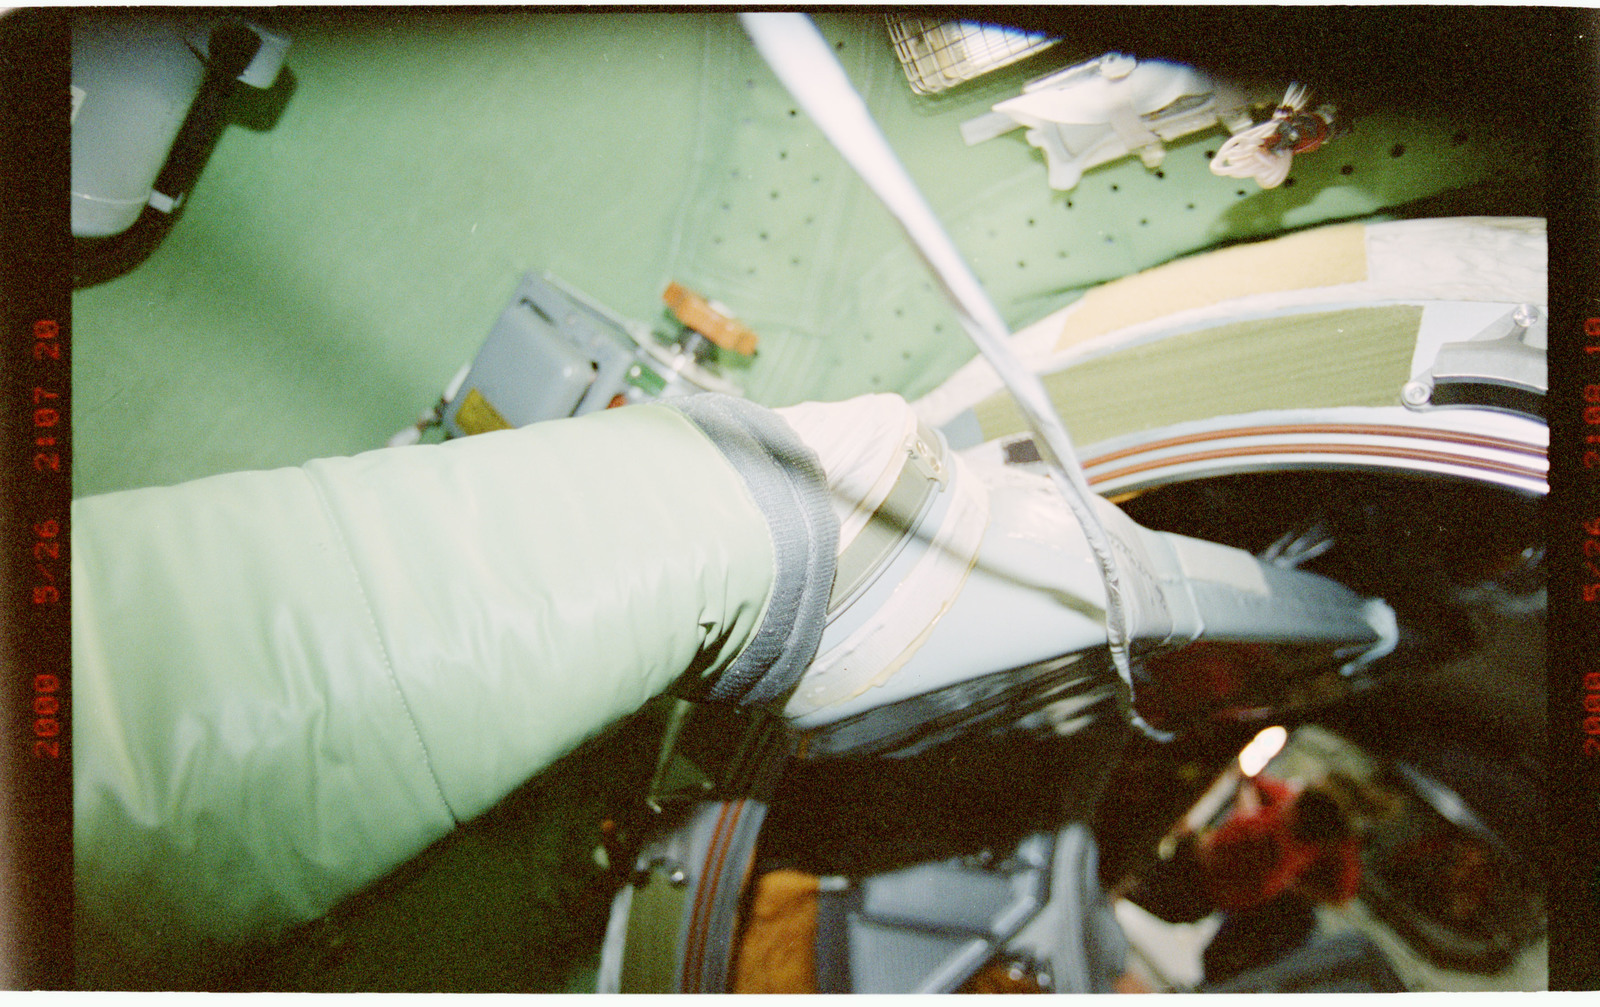 STS101-394-003 - STS-101 - View of ventilation hoses aboard the ISS